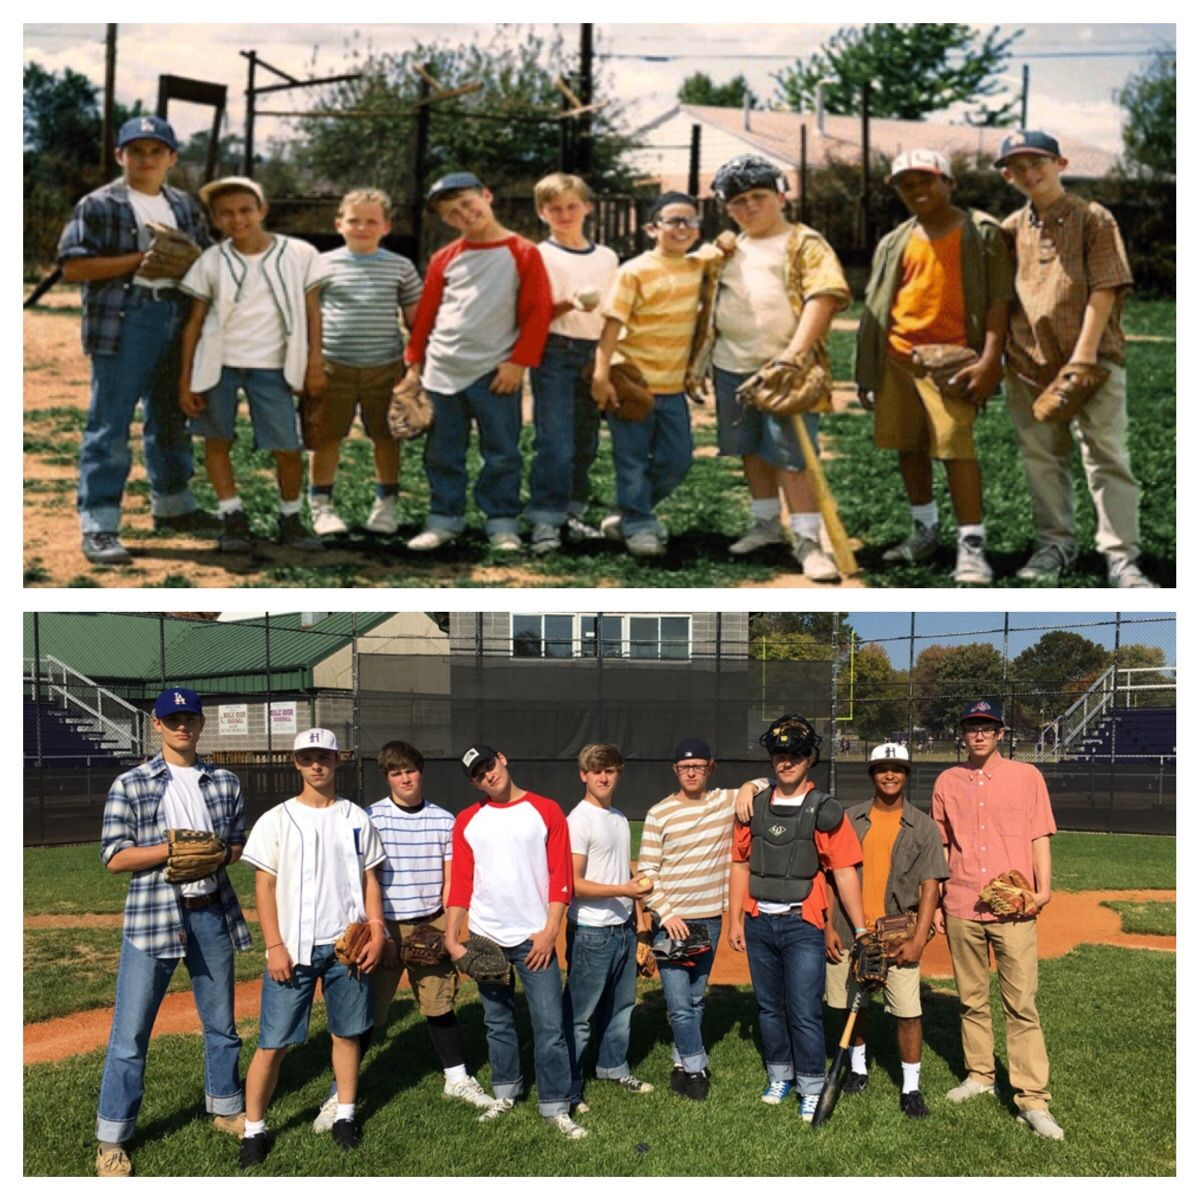 My friends and I went as the kids from The Sandlot for costume day at our